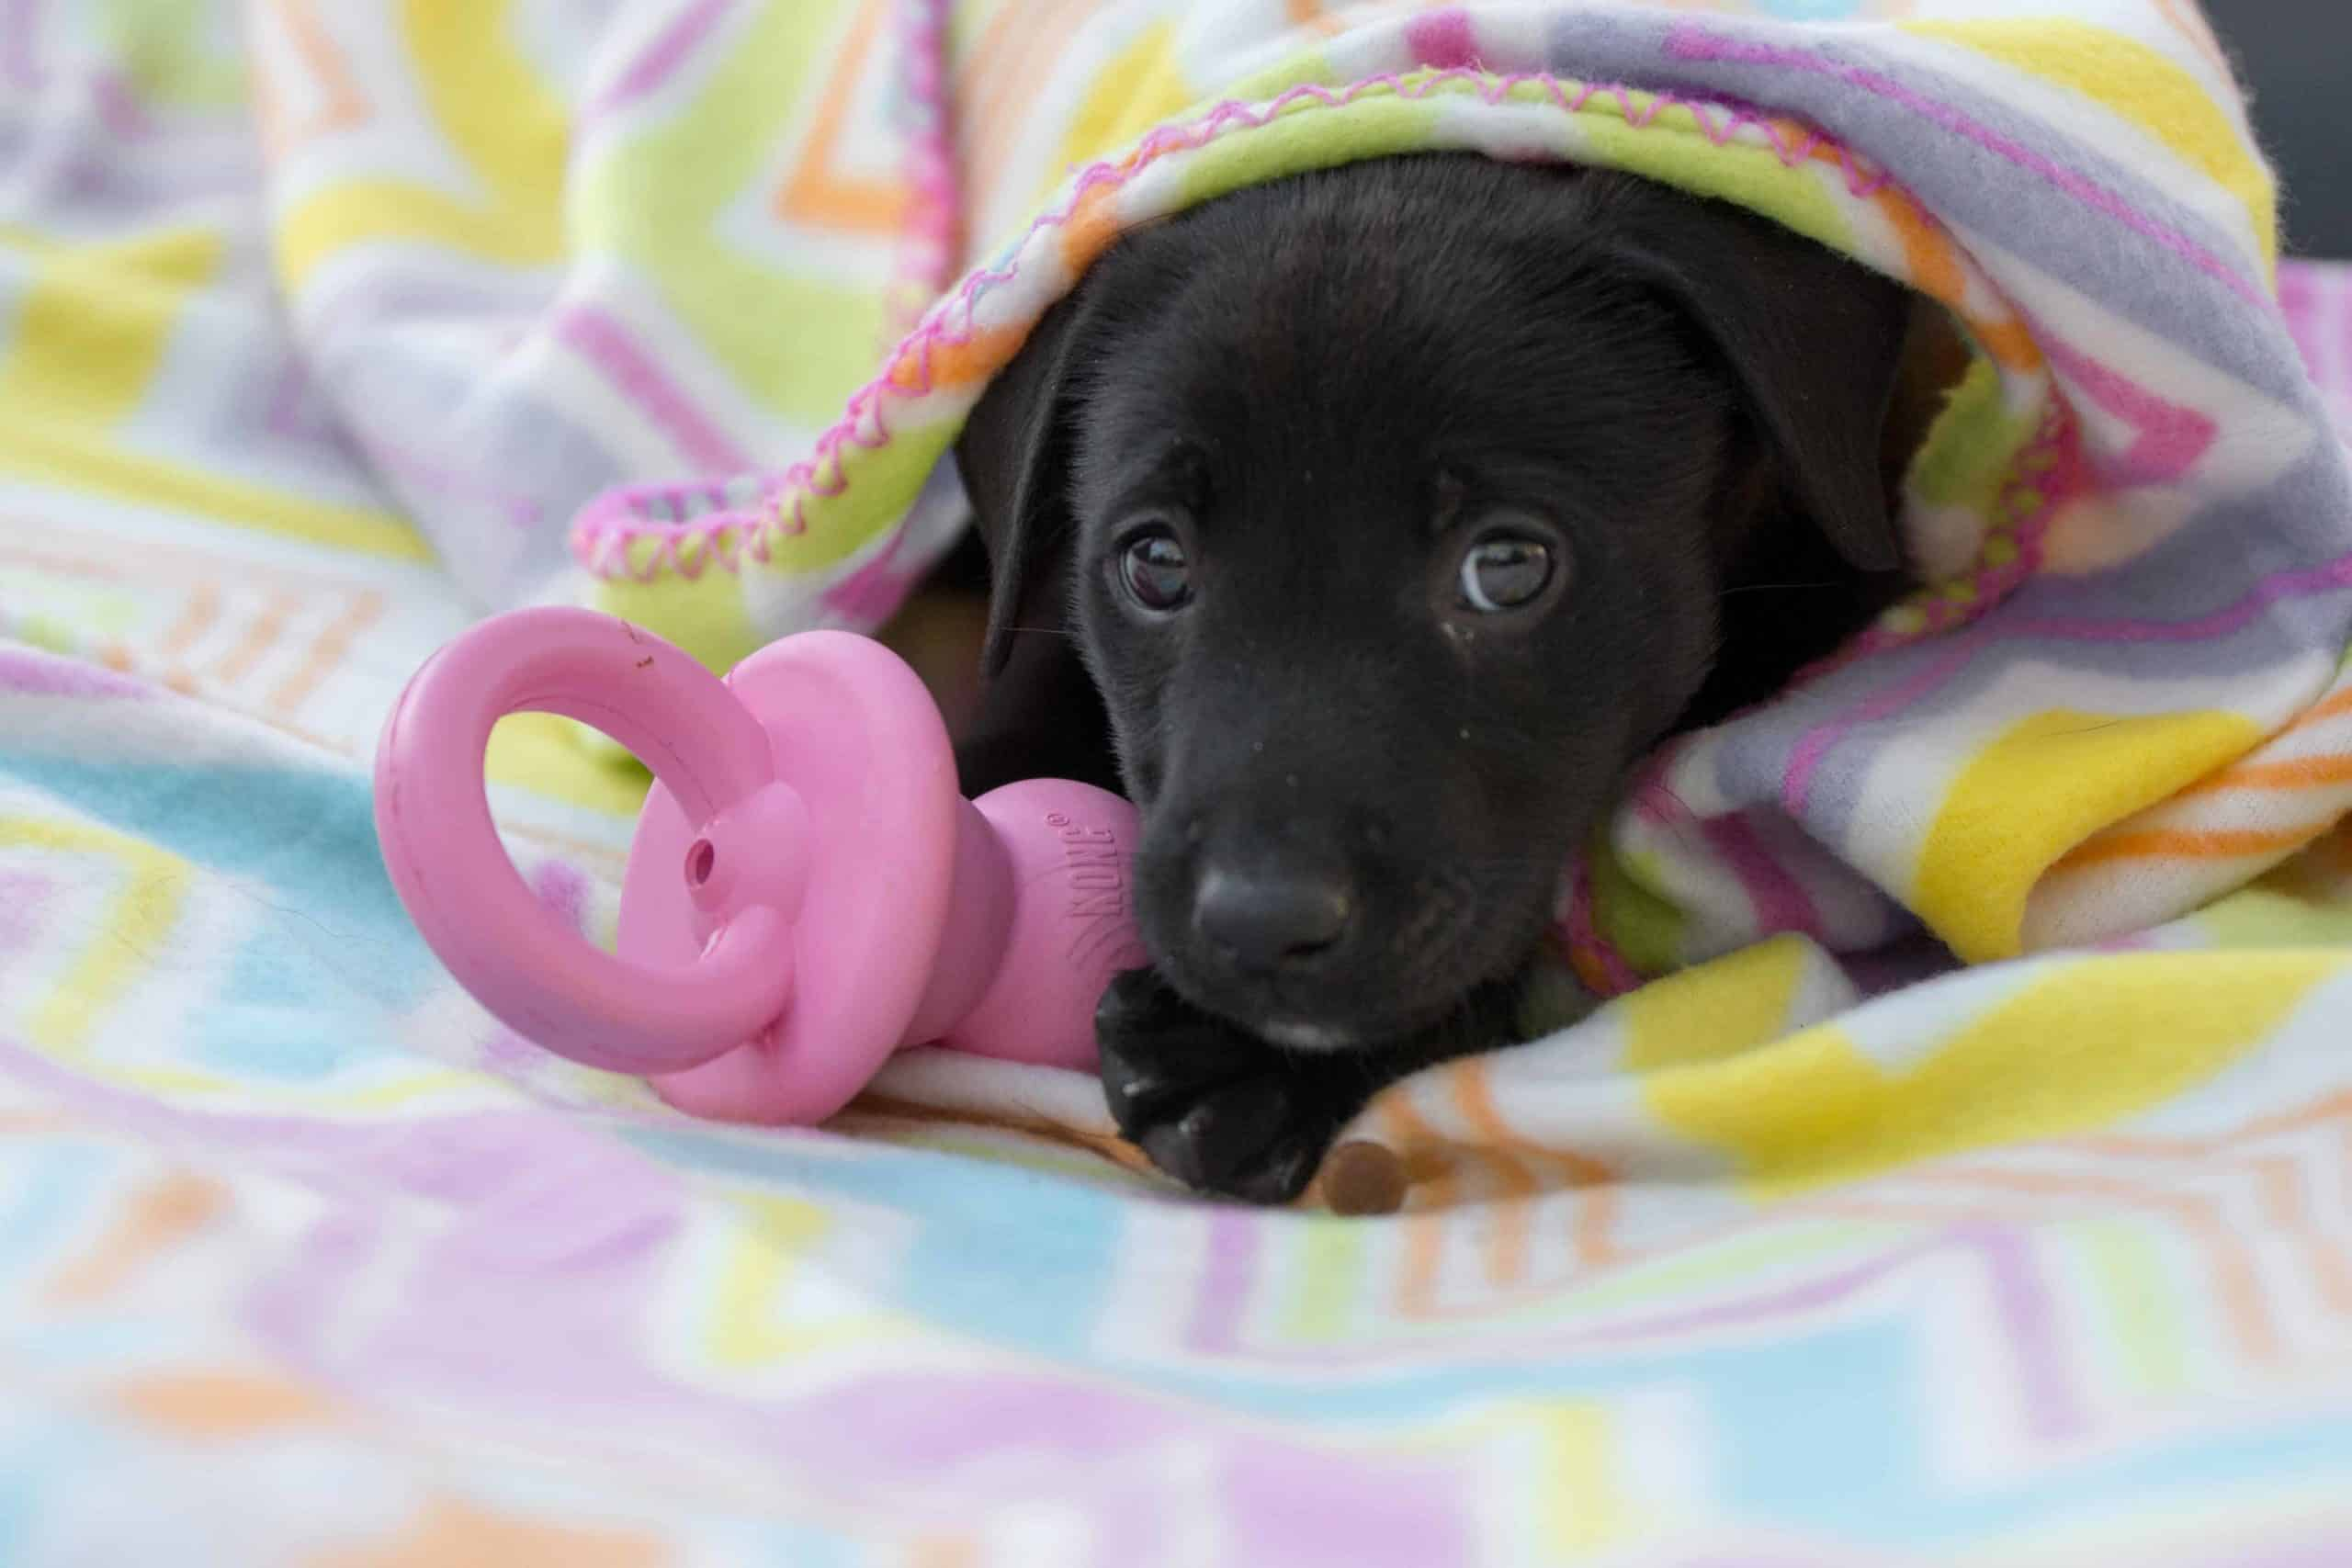 Puppy chews on Kong binkie toy. To help ease puppy teething pain, try using frozen rubber toys. The cold sensation will temporarily alleviate their pain and provide them with some much-needed respite.